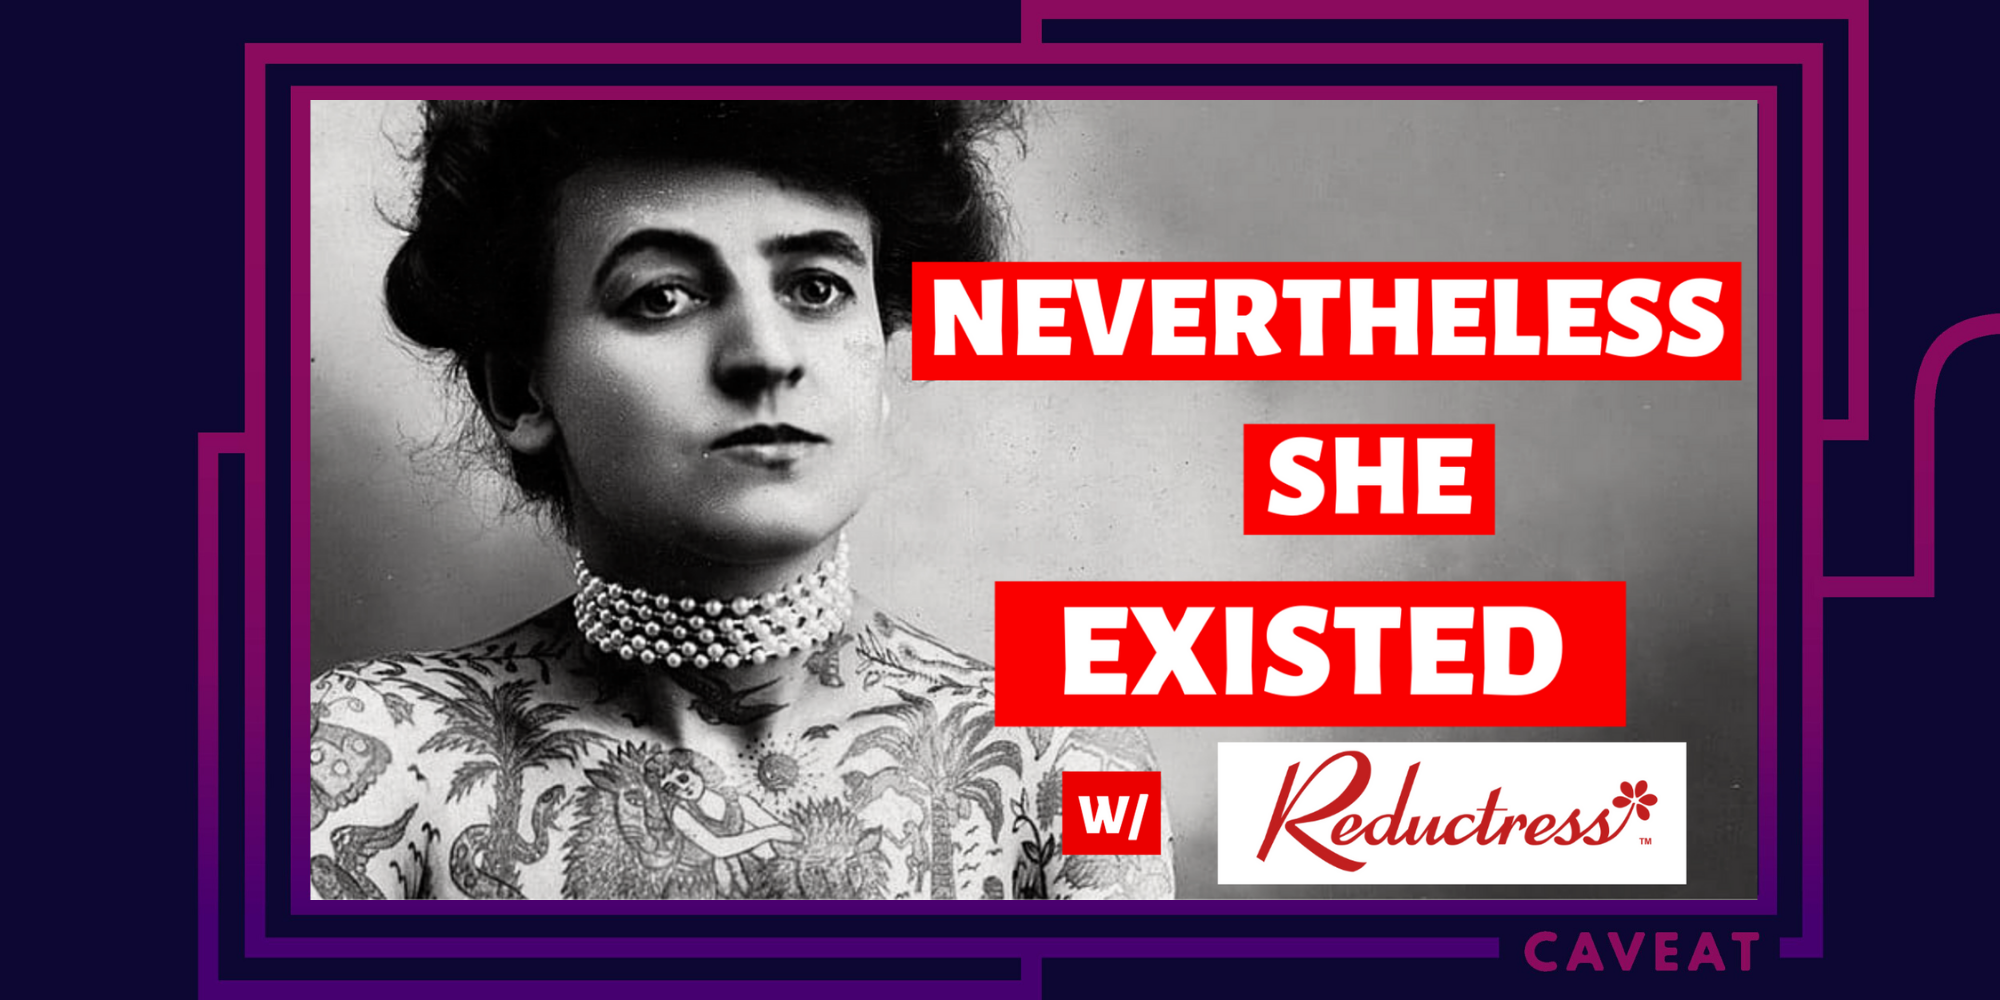 86355 image - Nevertheless She Existed: Comedy